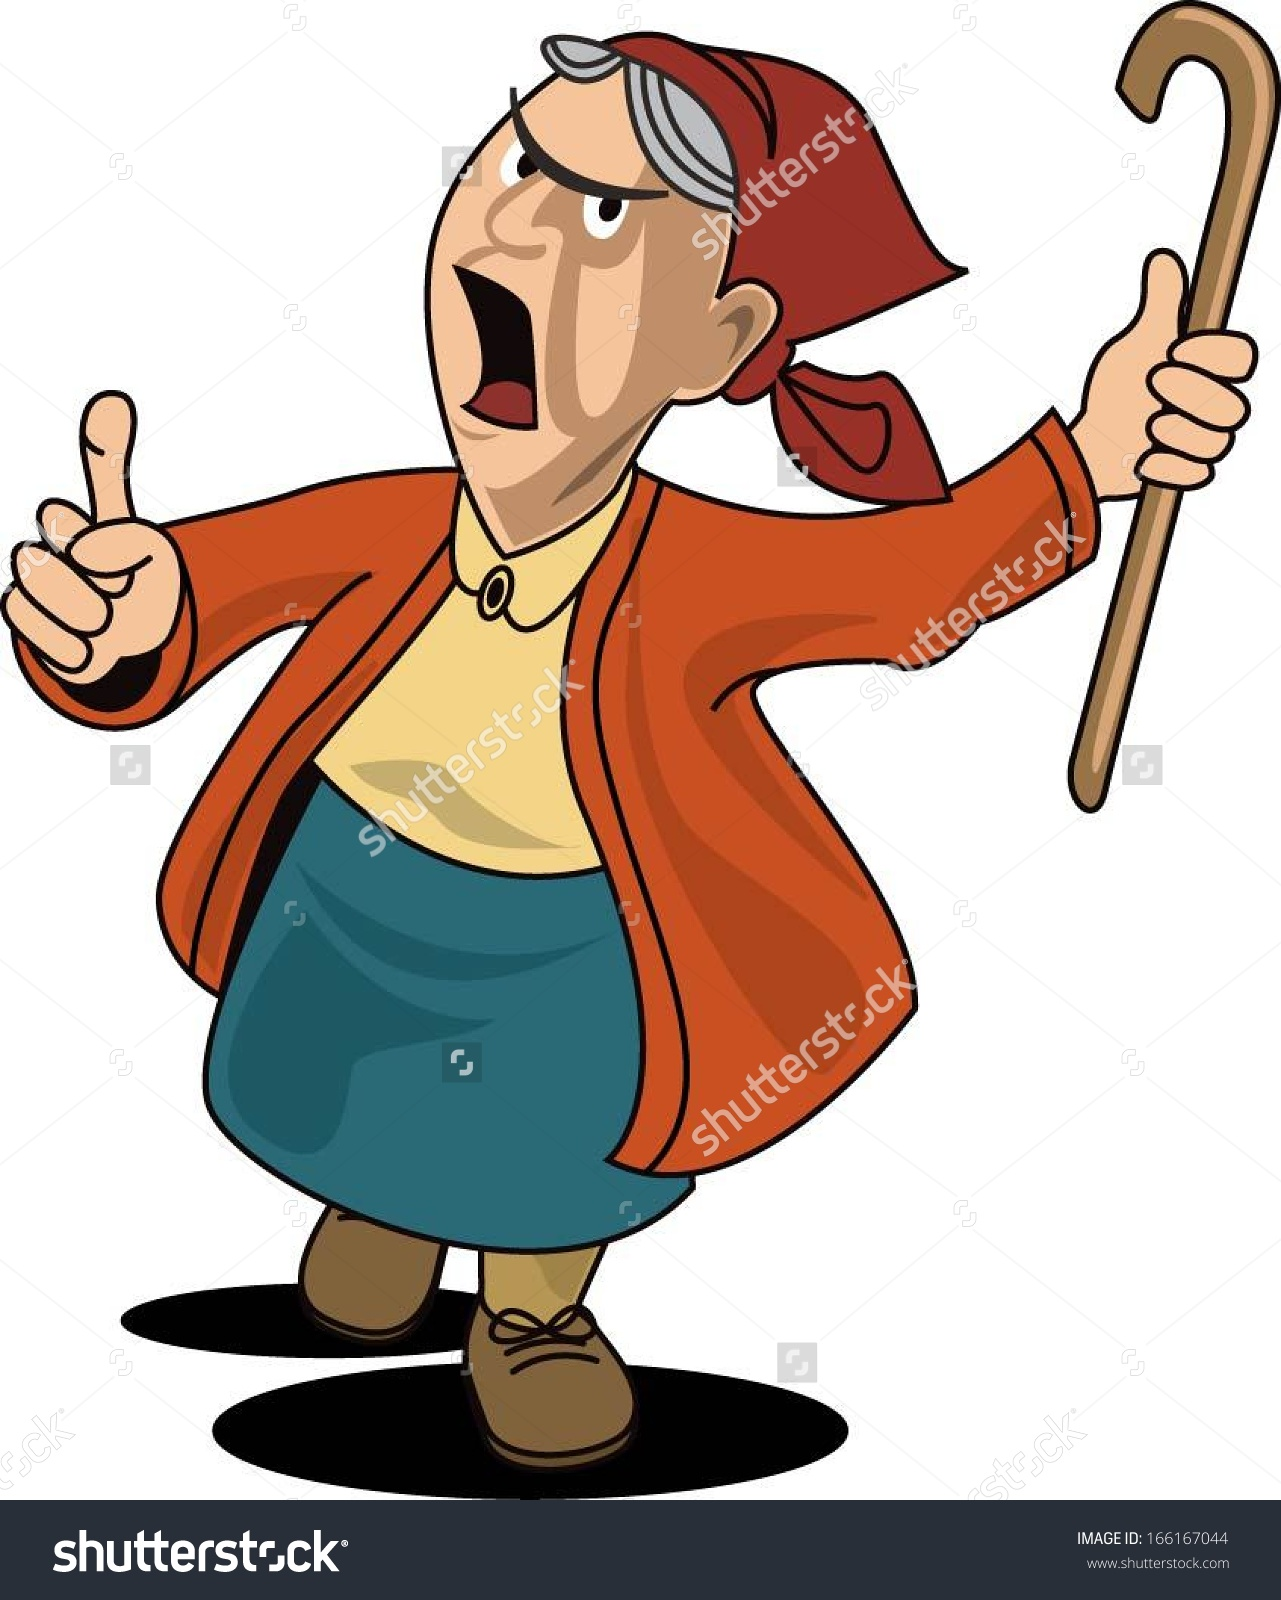 20632 Old free clipart.